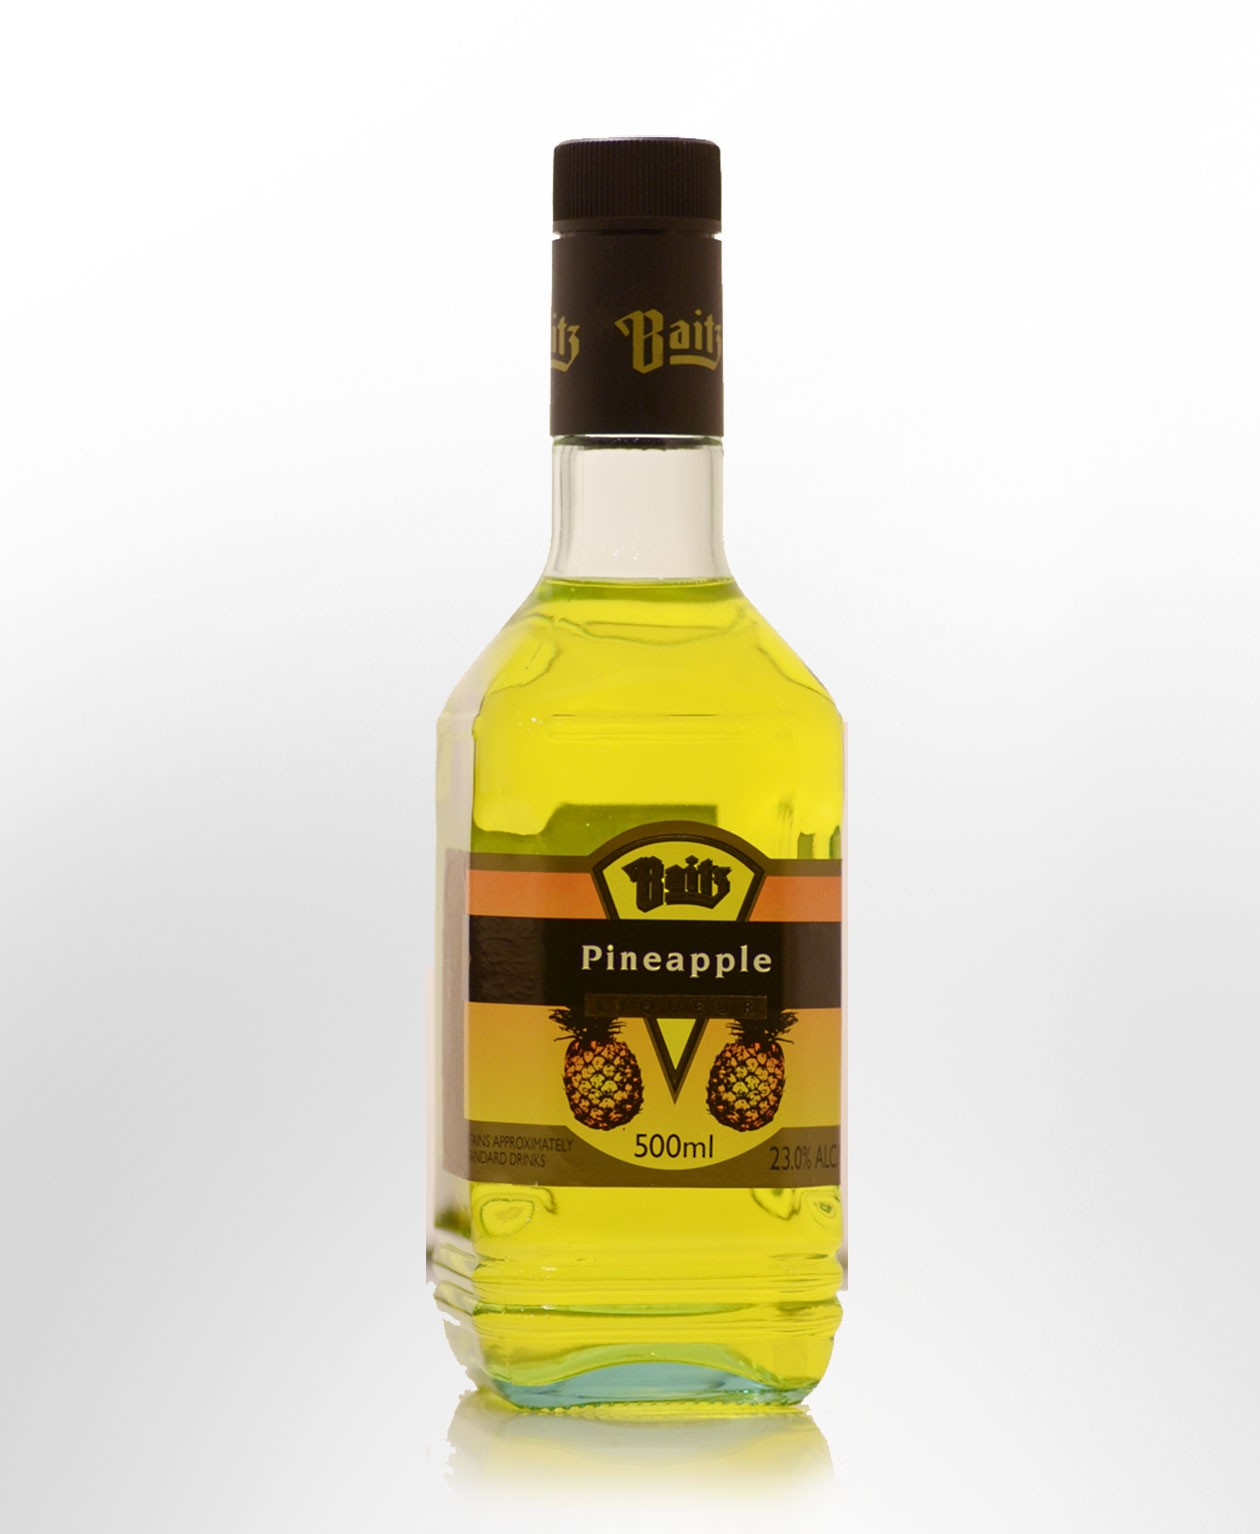 Baitz Pineapple Liqueur (500ml)